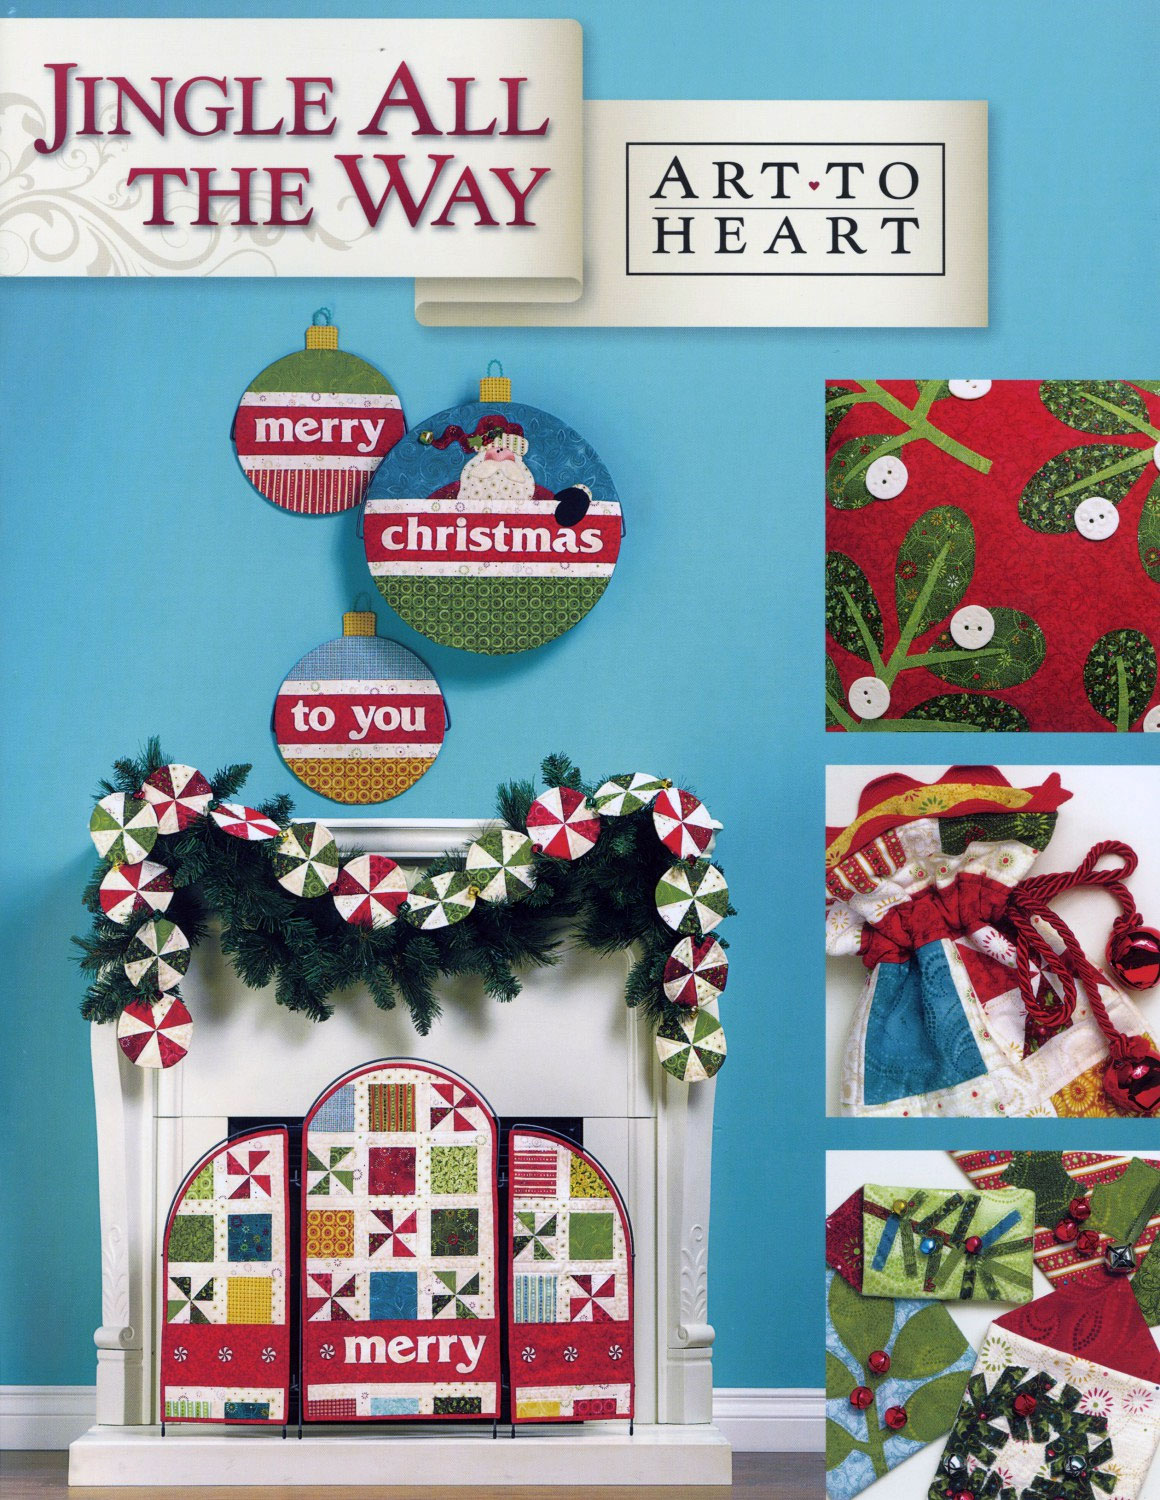 Jingle-all-the-way-sewing-pattern-Art-To-Heart-front